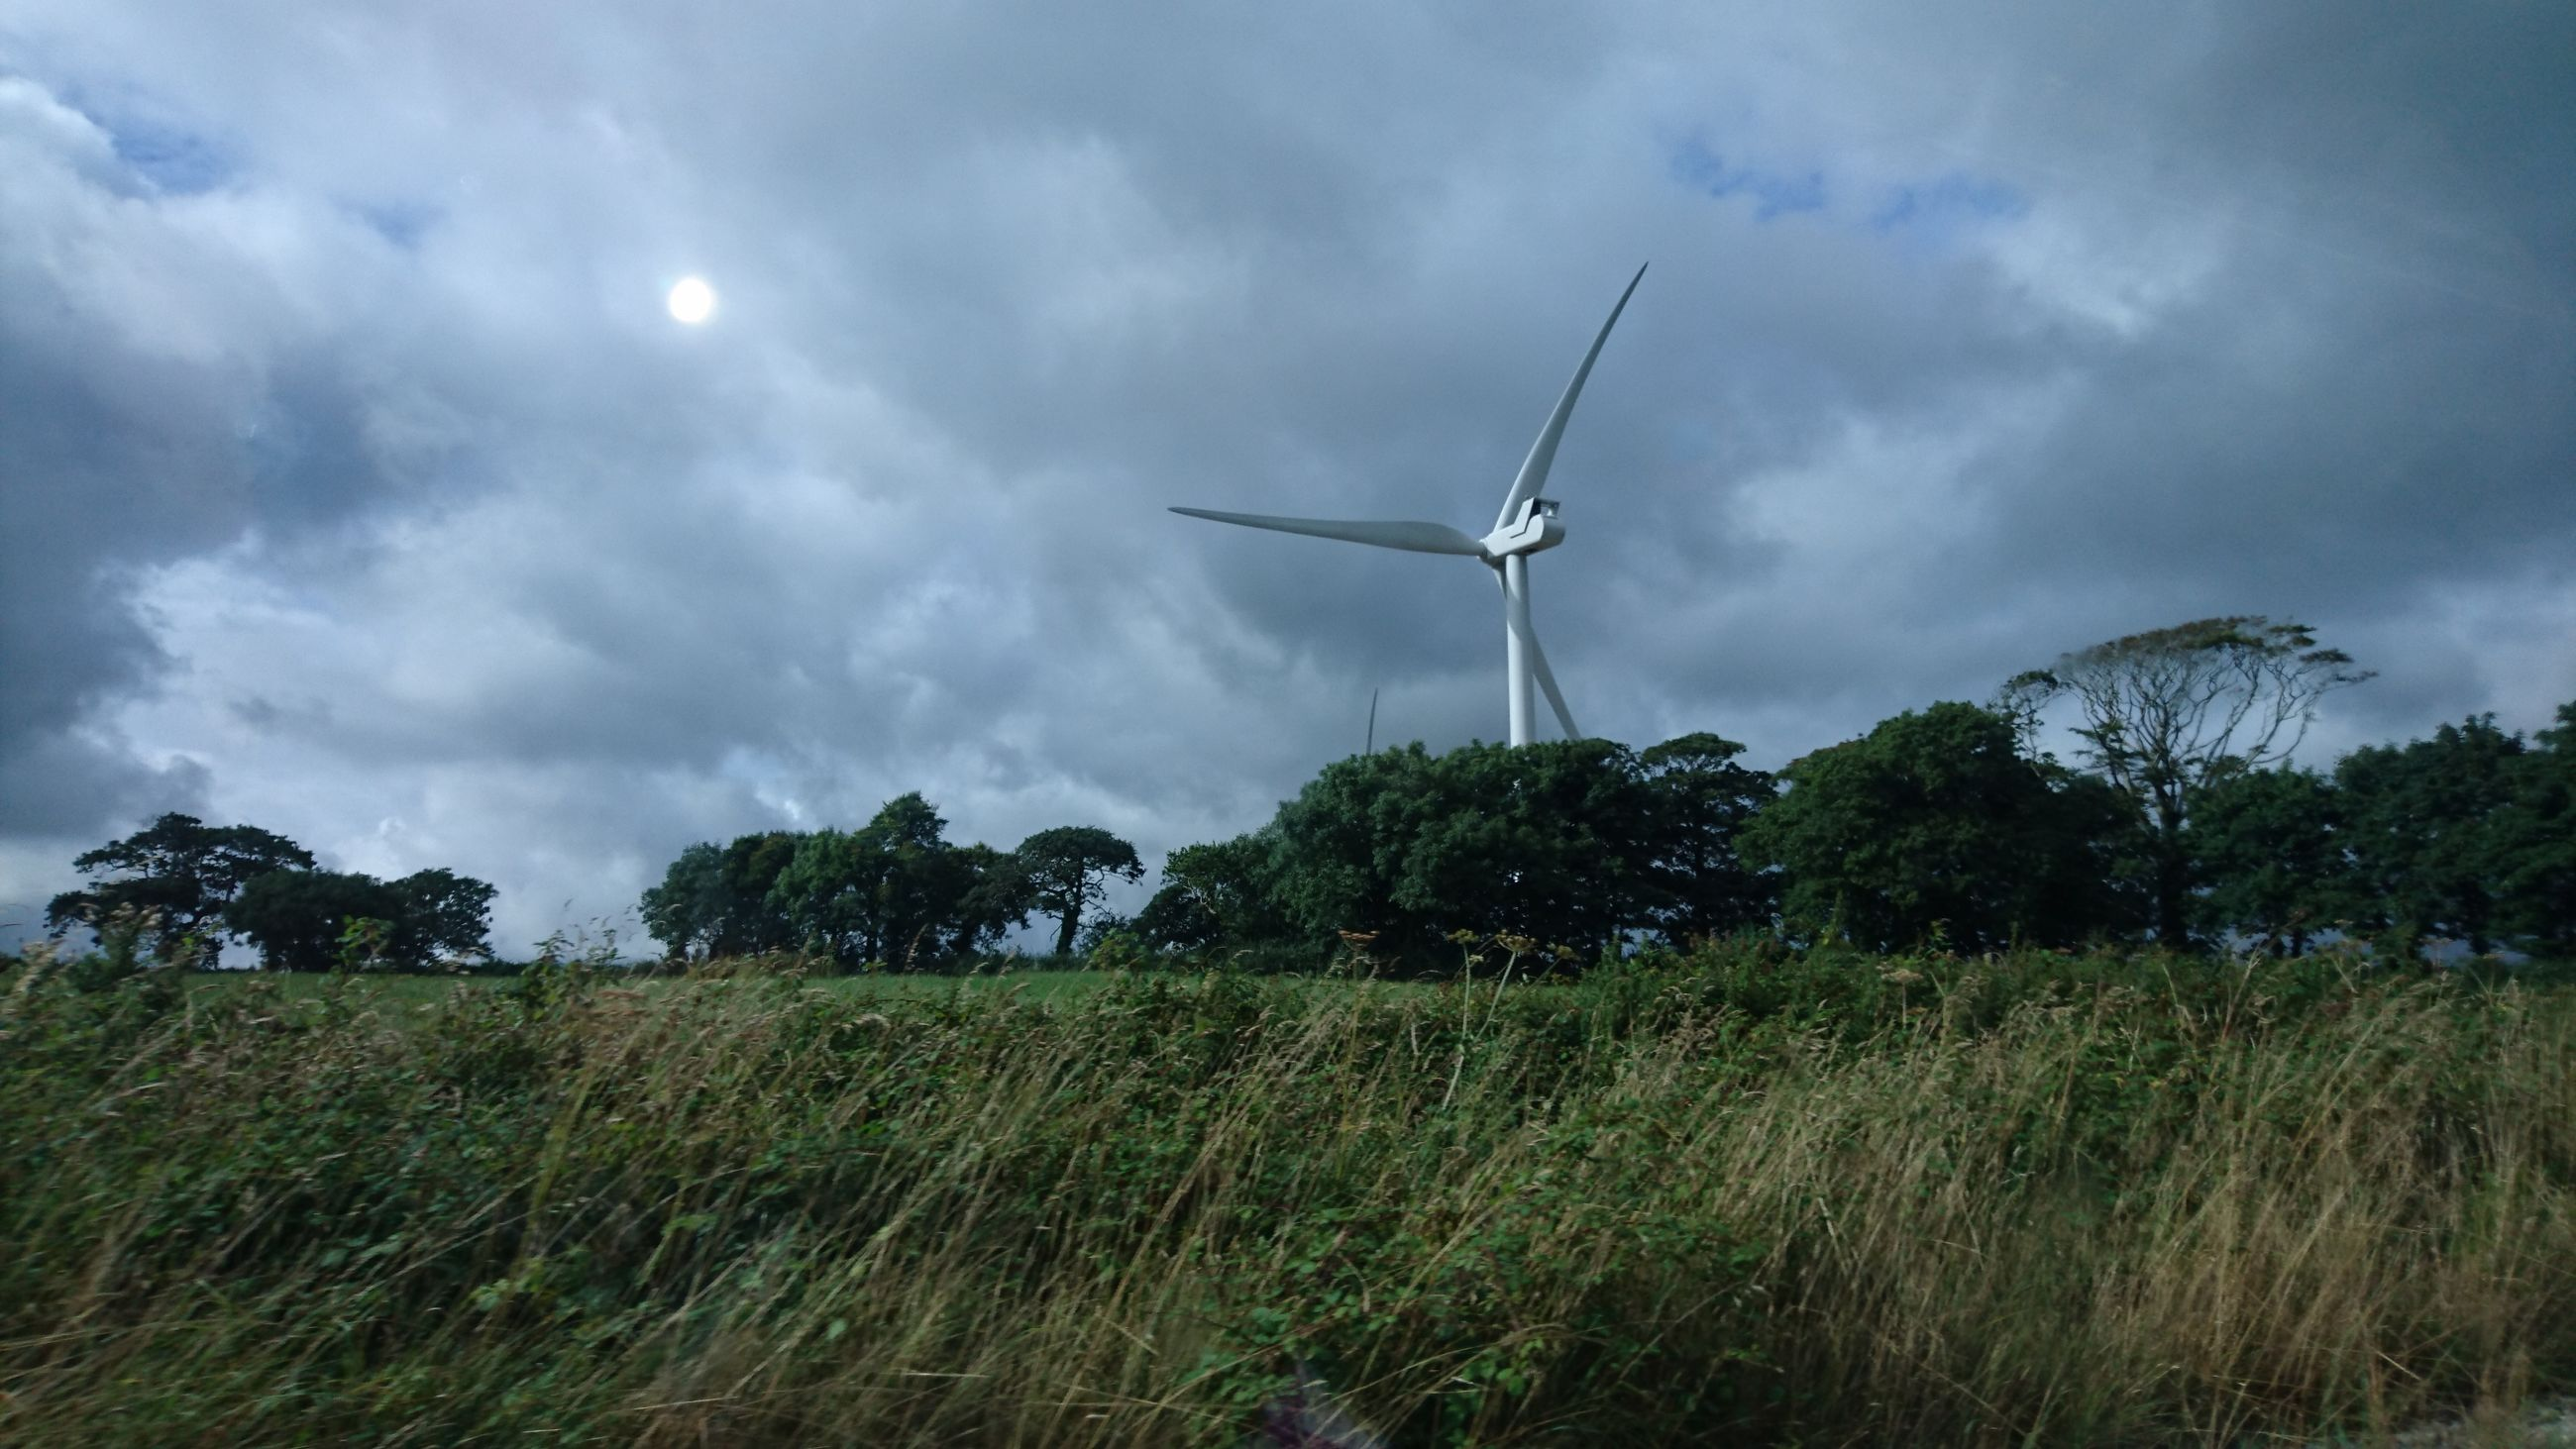 alternative energy, wind turbine, wind power, environmental conservation, fuel and power generation, renewable energy, windmill, rural scene, grass, environment, field, sky, scenics, tranquil scene, nature, tranquility, green color, power in nature, outdoors, plant, sustainable resources, non-urban scene, growth, cloud, wind, cloud - sky, beauty in nature, day, farm, agriculture, solitude, cloudscape